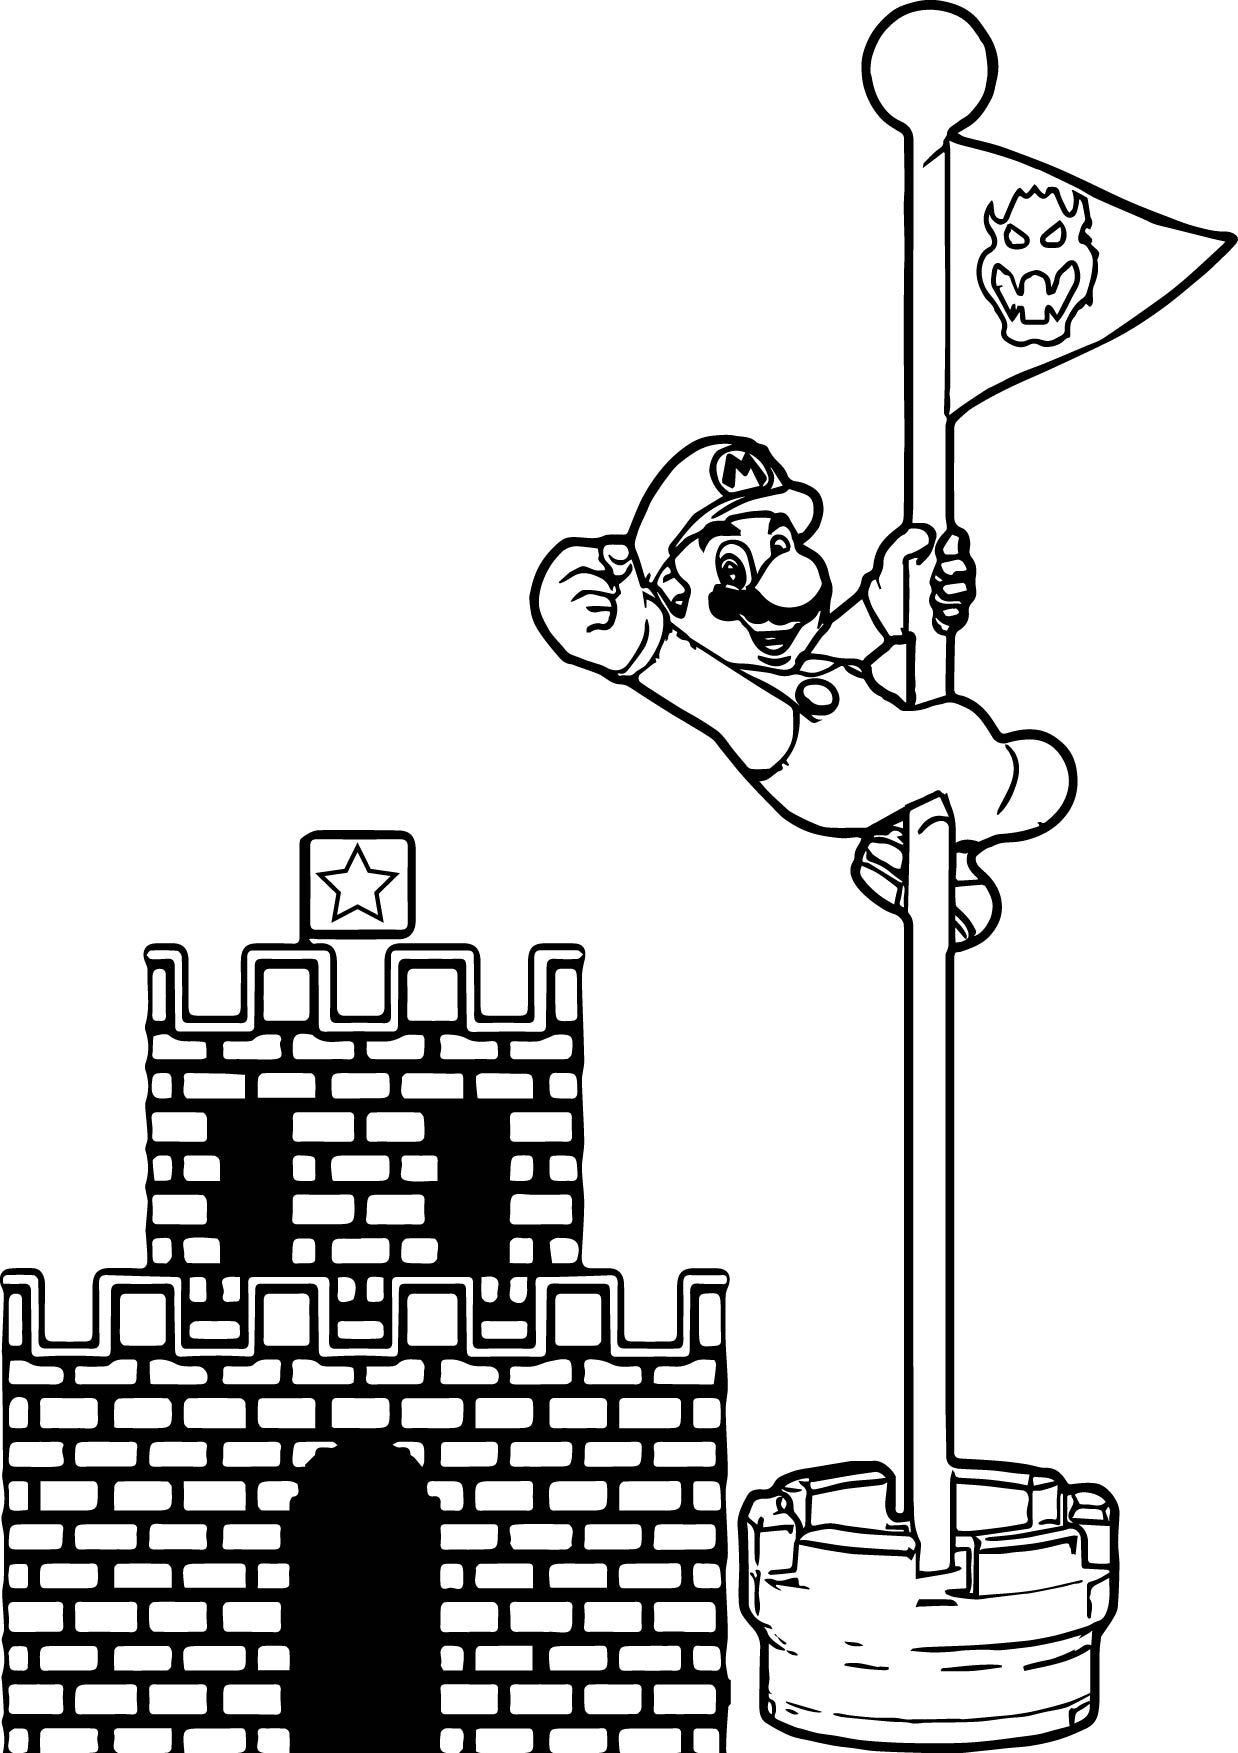 Super Mario Coloring Pages Fresh Mario Coloring Pages Mario